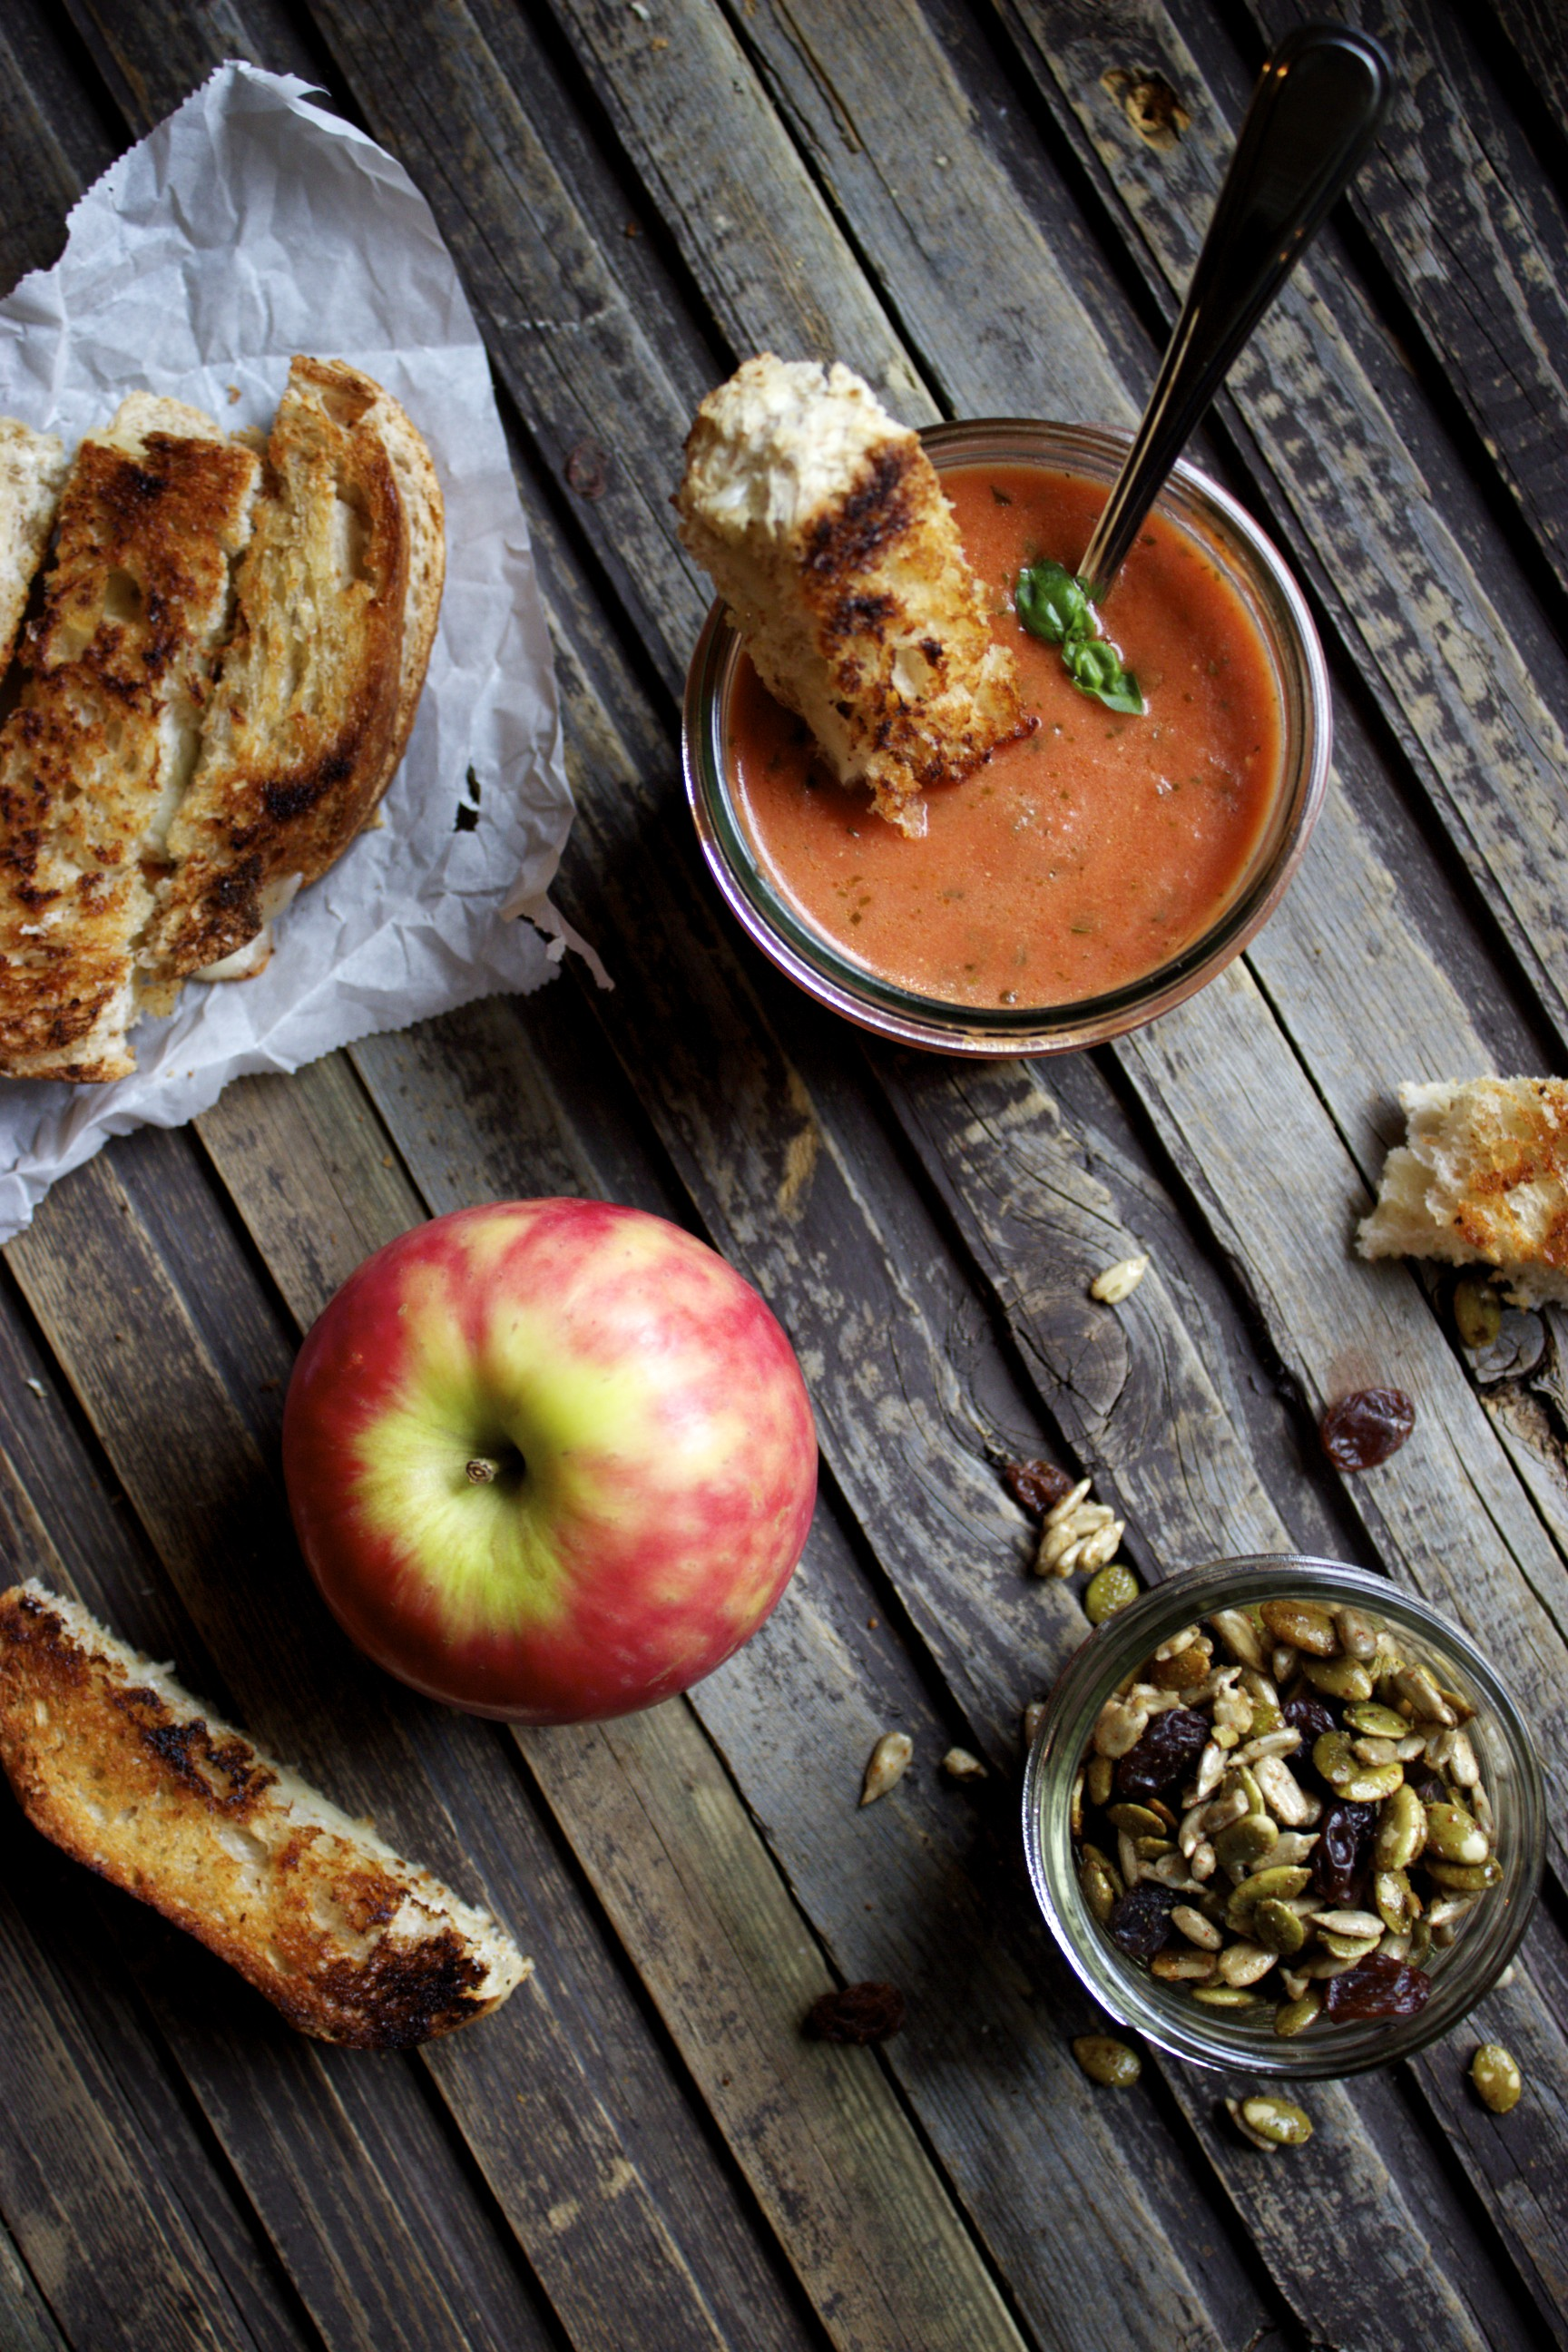 Quick Tomato Soup, Grilled Cheese Sticks, and Smoky Sweet Seed Snack